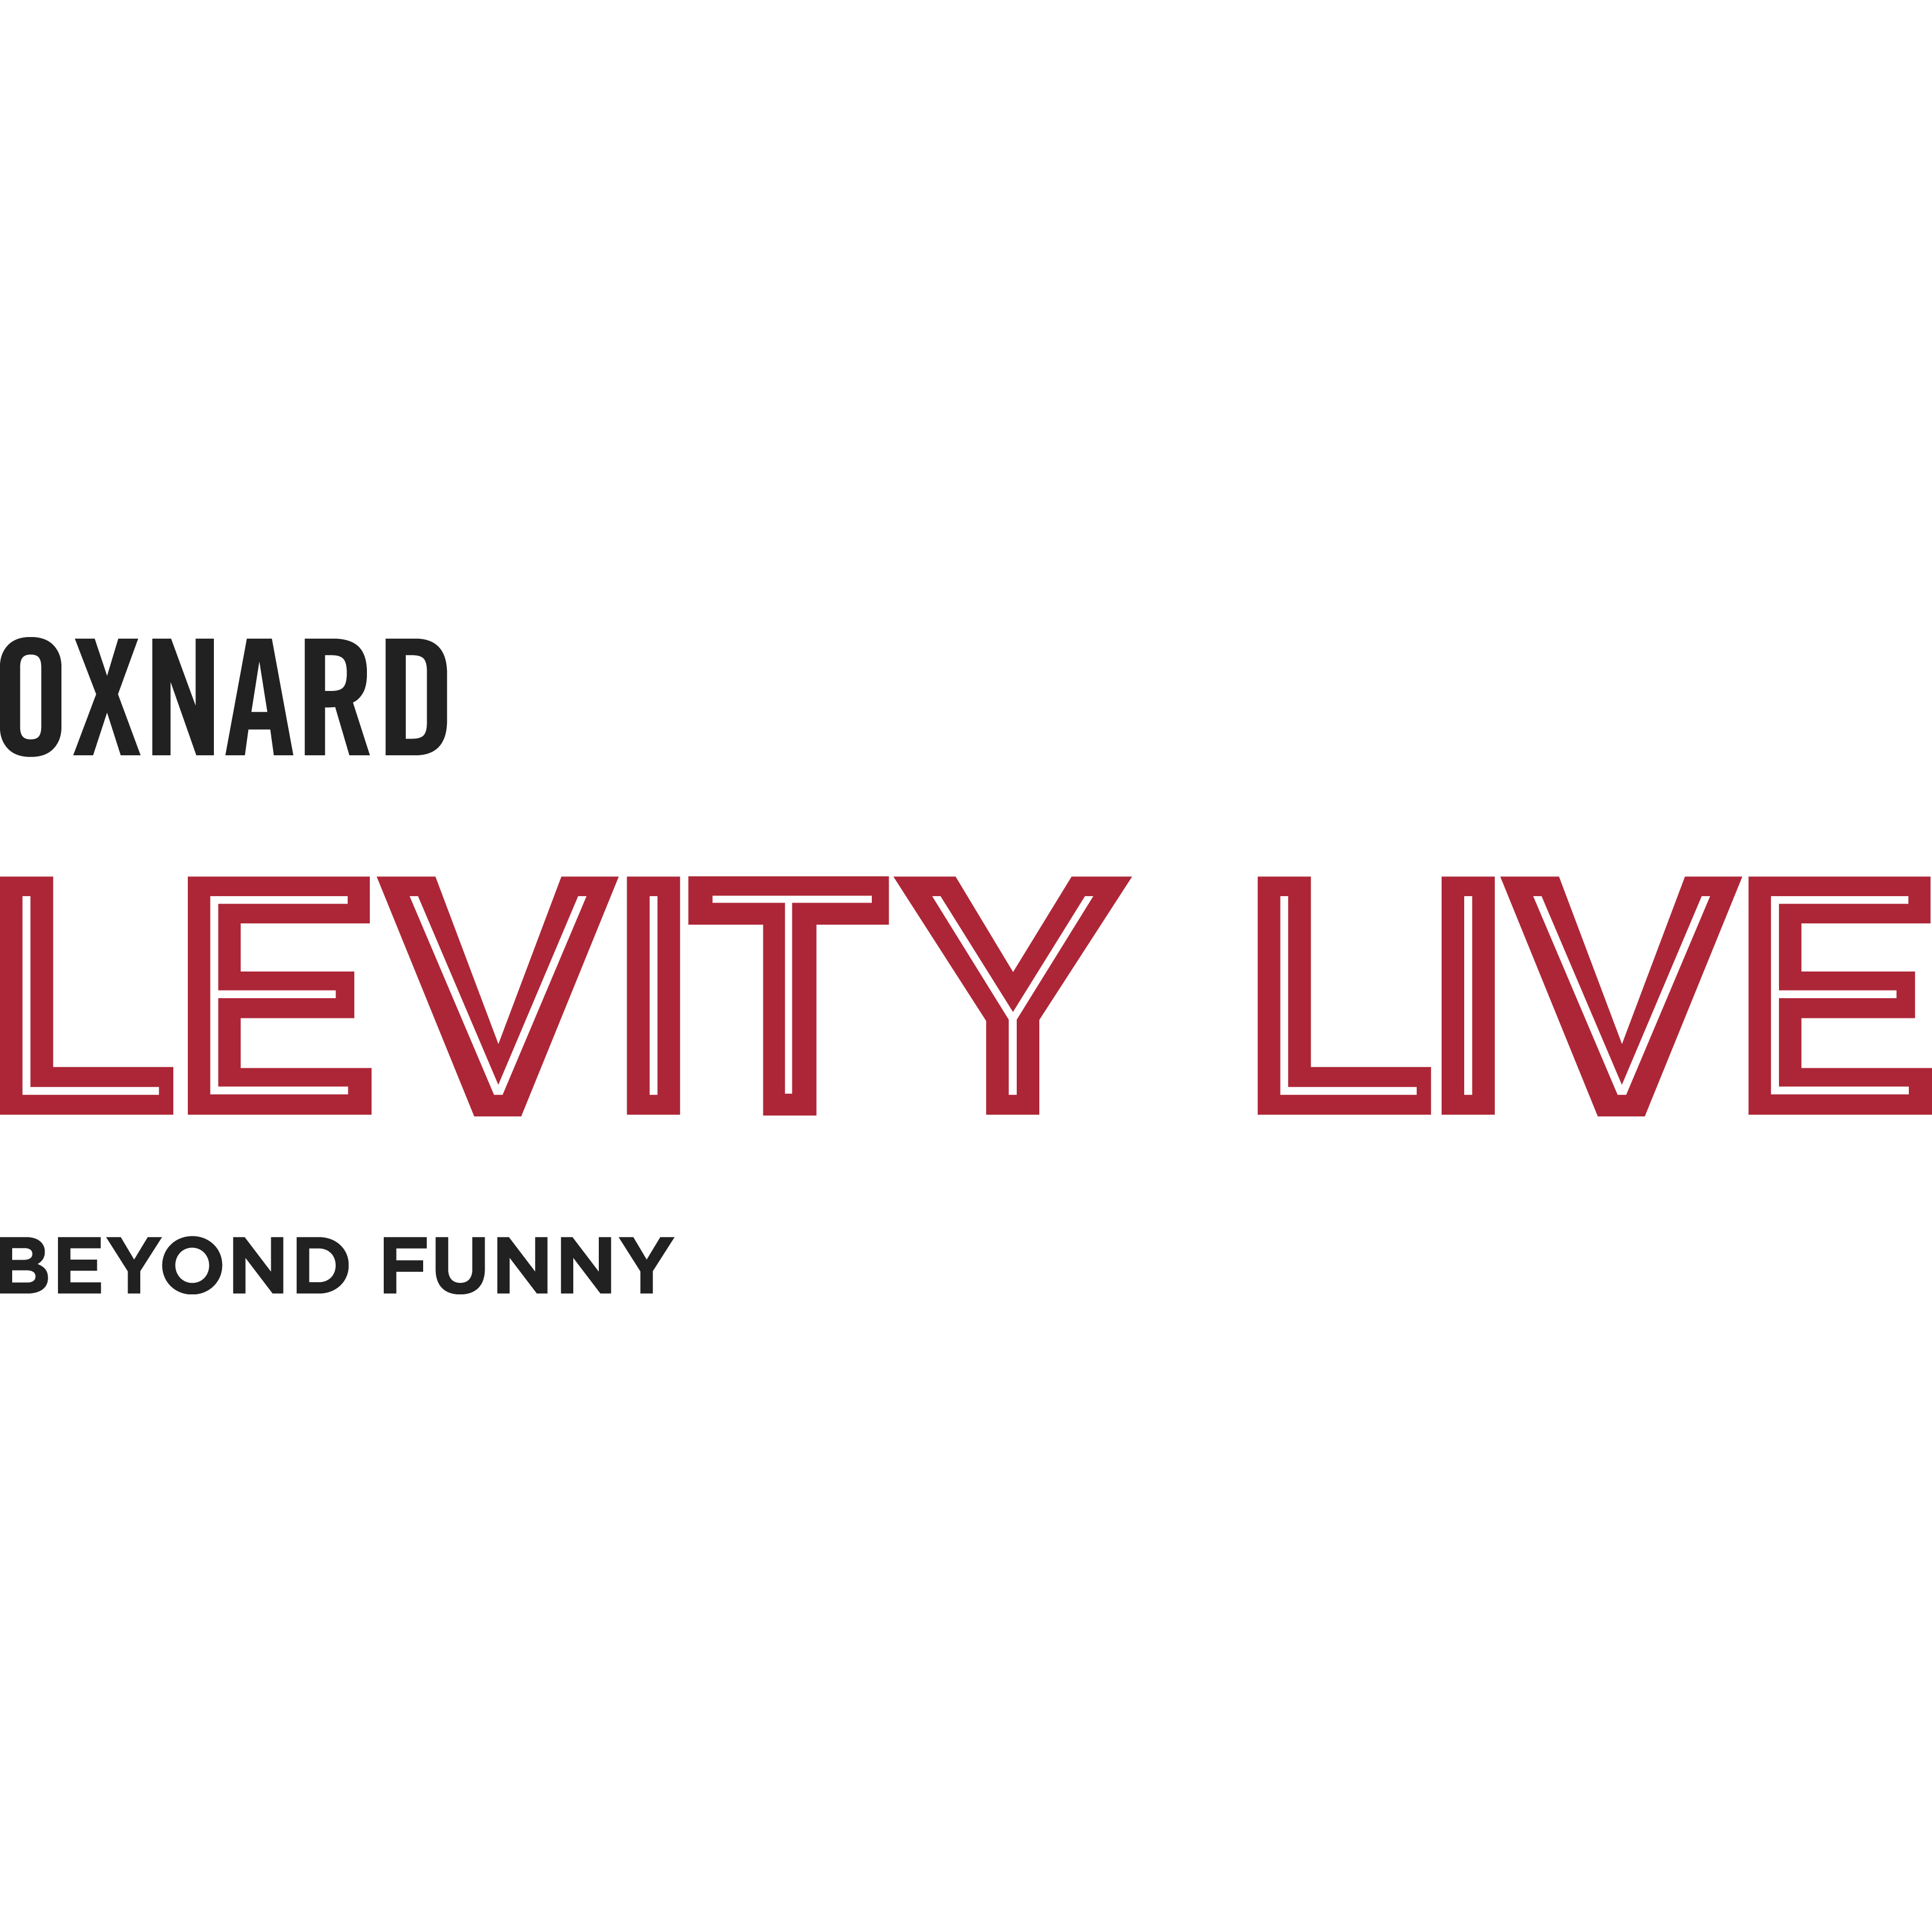 Oxnard Levity Live Comedy Club